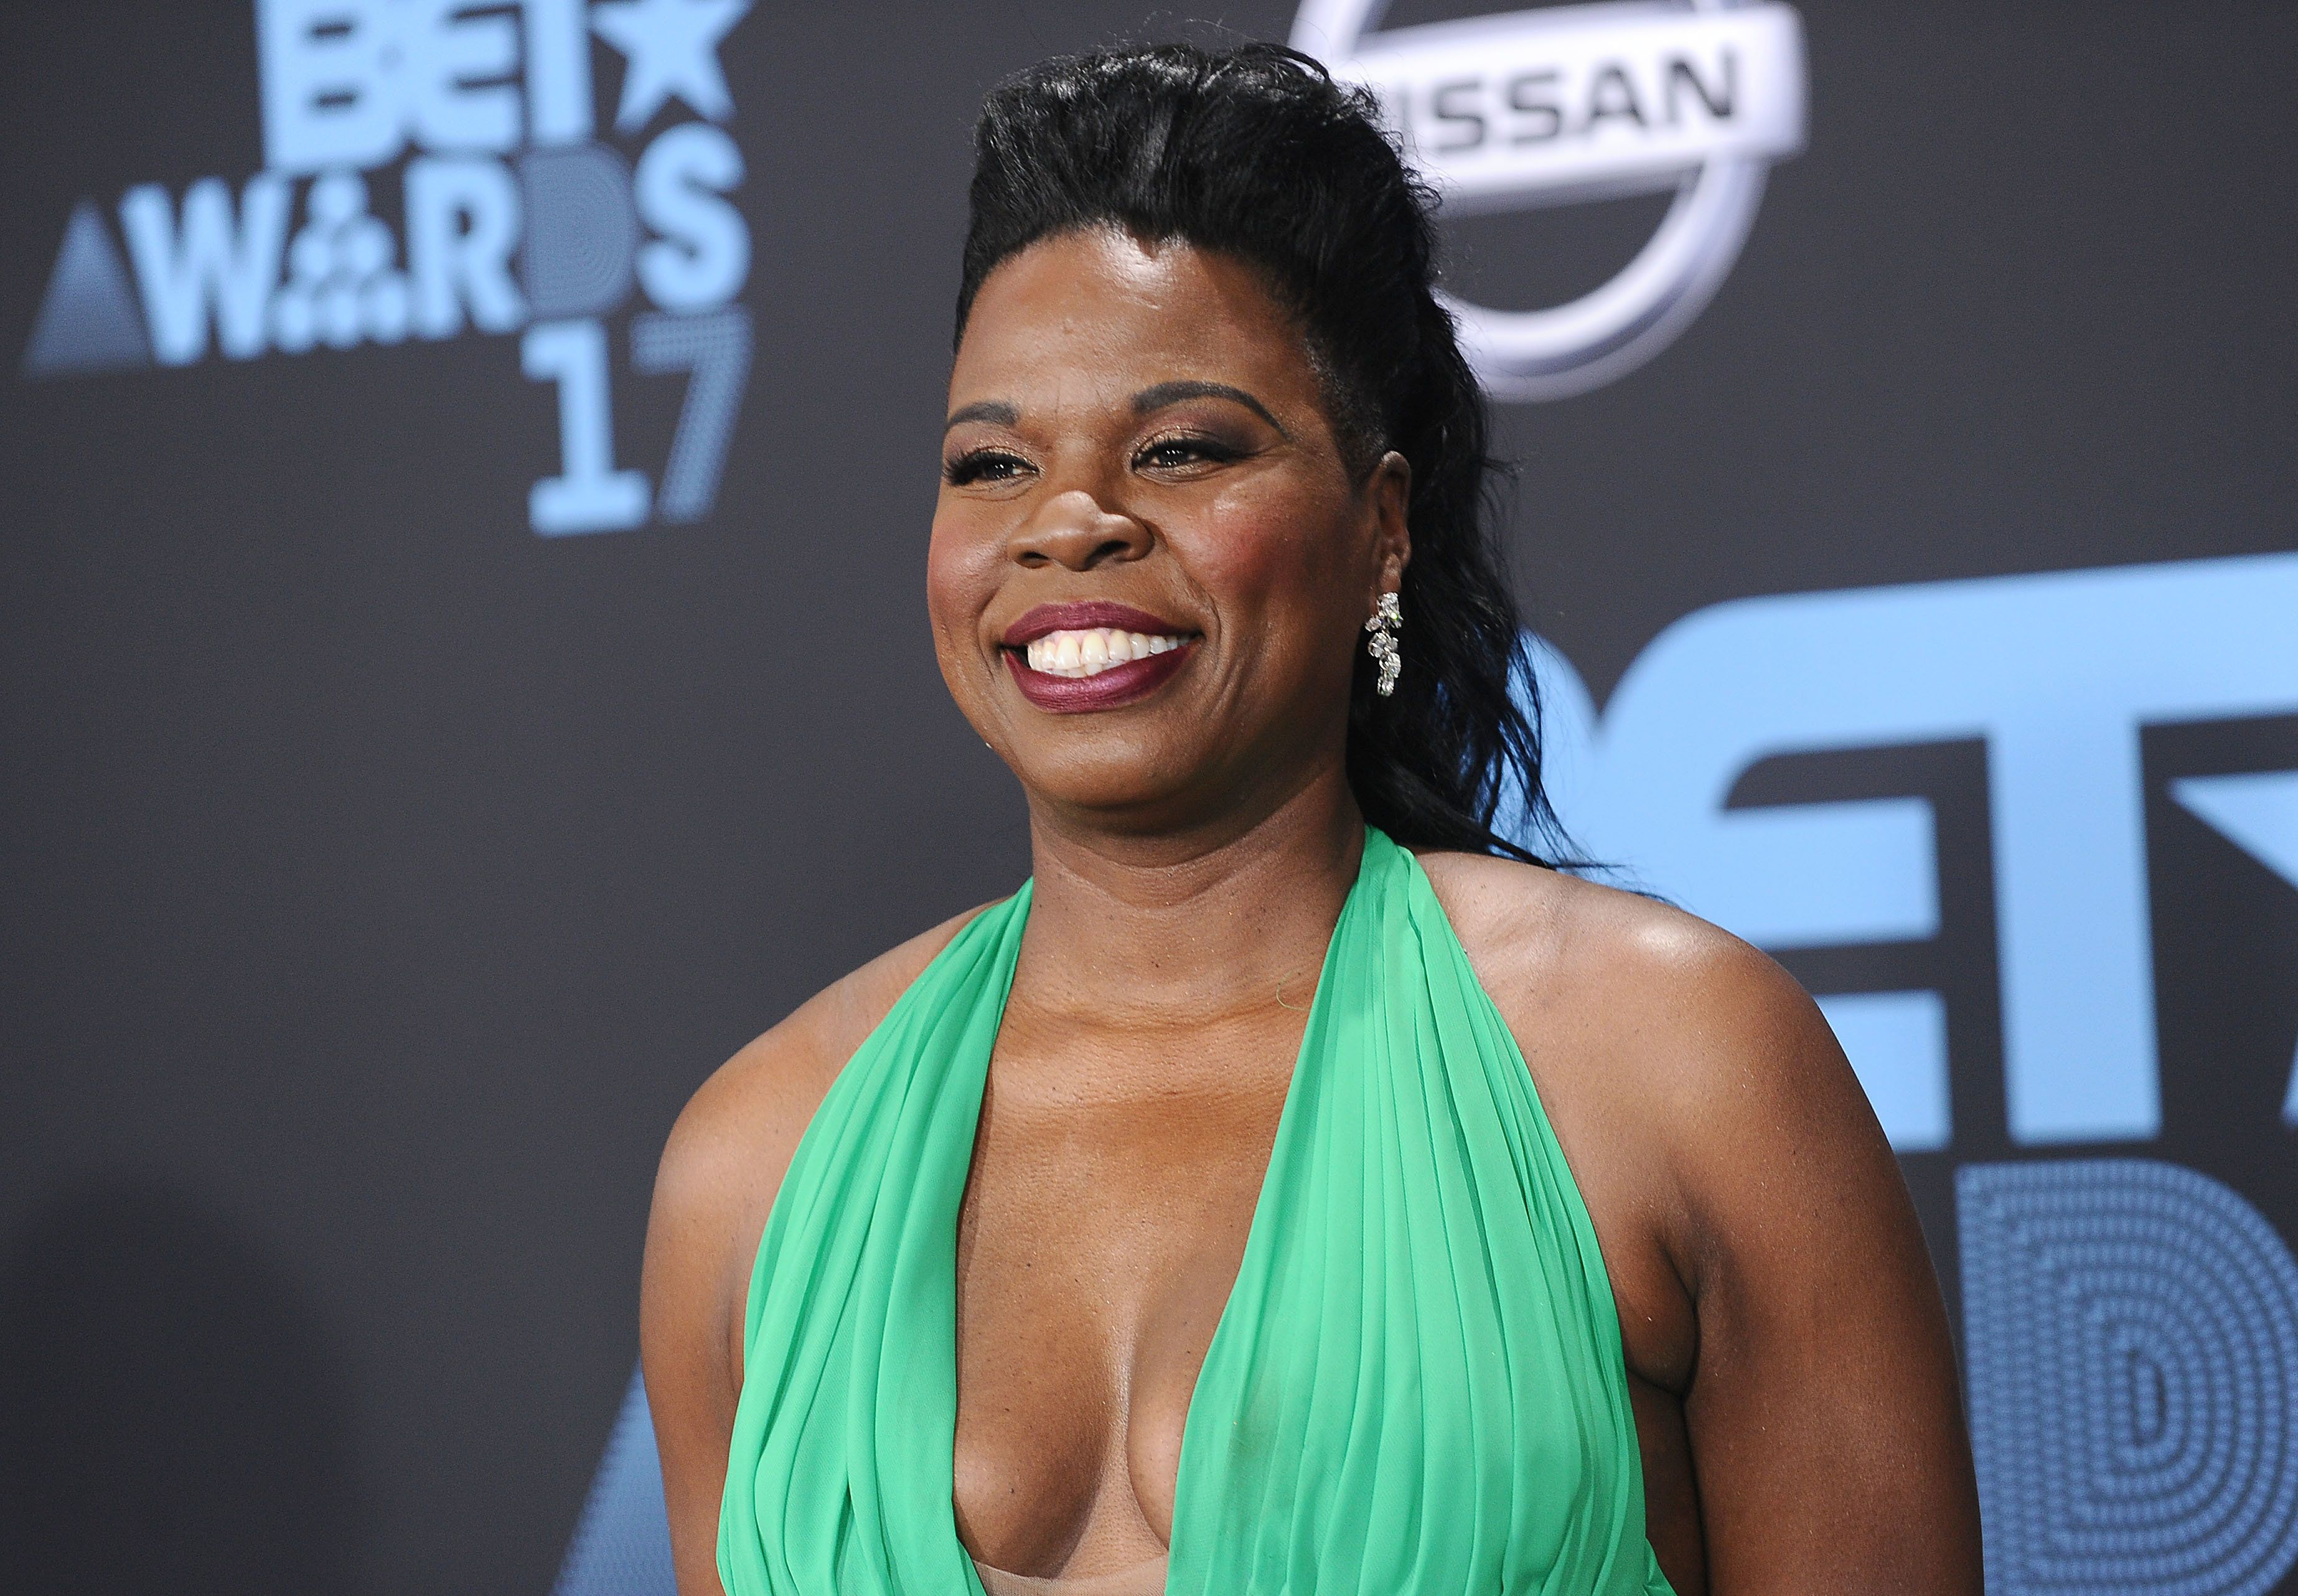 LOS ANGELES, CA - JUNE 25:  Actress Leslie Jones attends the 2017 BET Awards at Microsoft Theater on June 25, 2017 in Los Angeles, California.  (Photo by Jason LaVeris/FilmMagic)